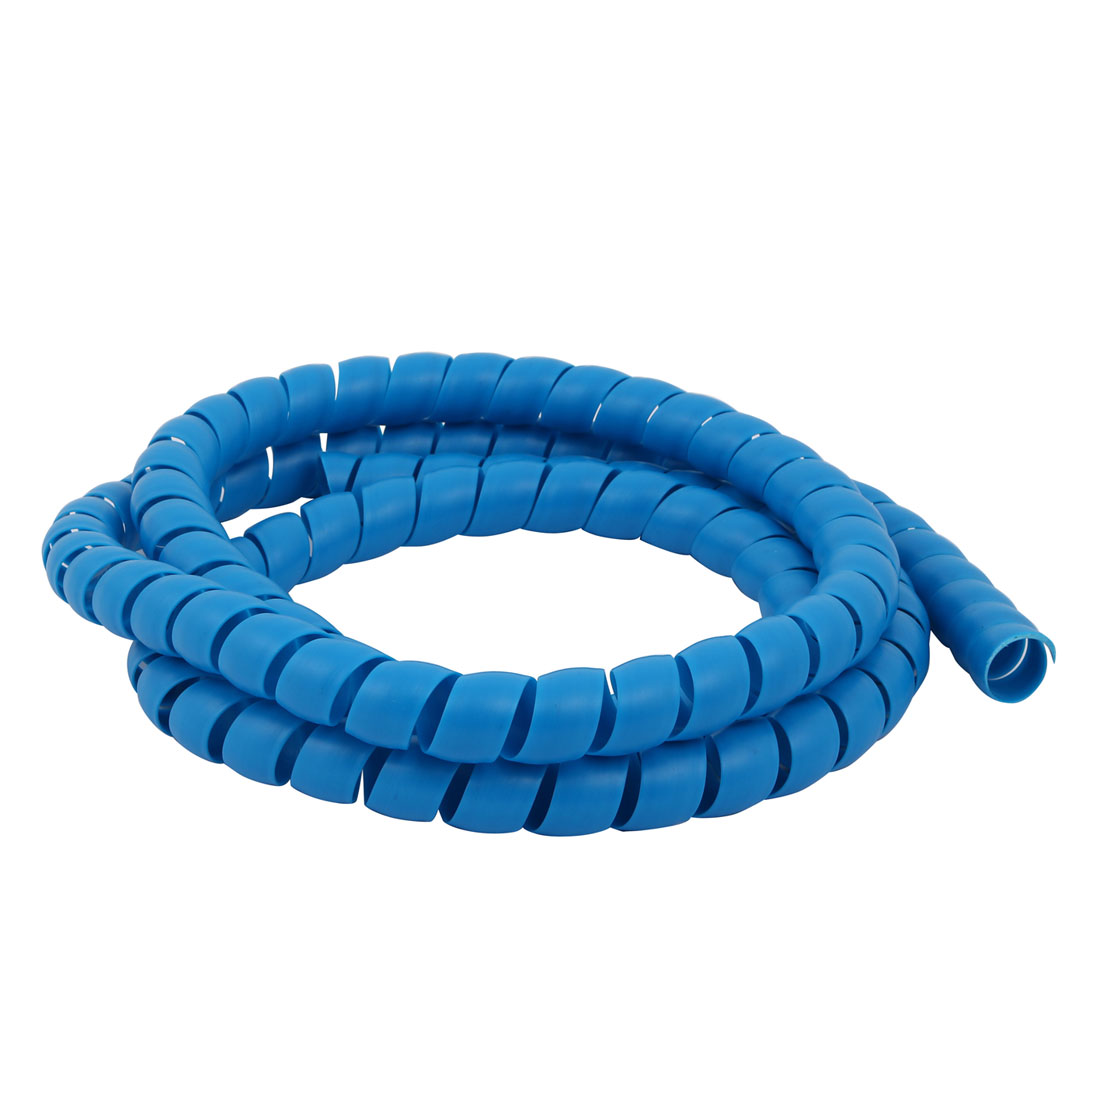 Flexible Spiral Tube Cable Wire Wrap Blue Manage Cord 16mm Dia x 2 Meter Long